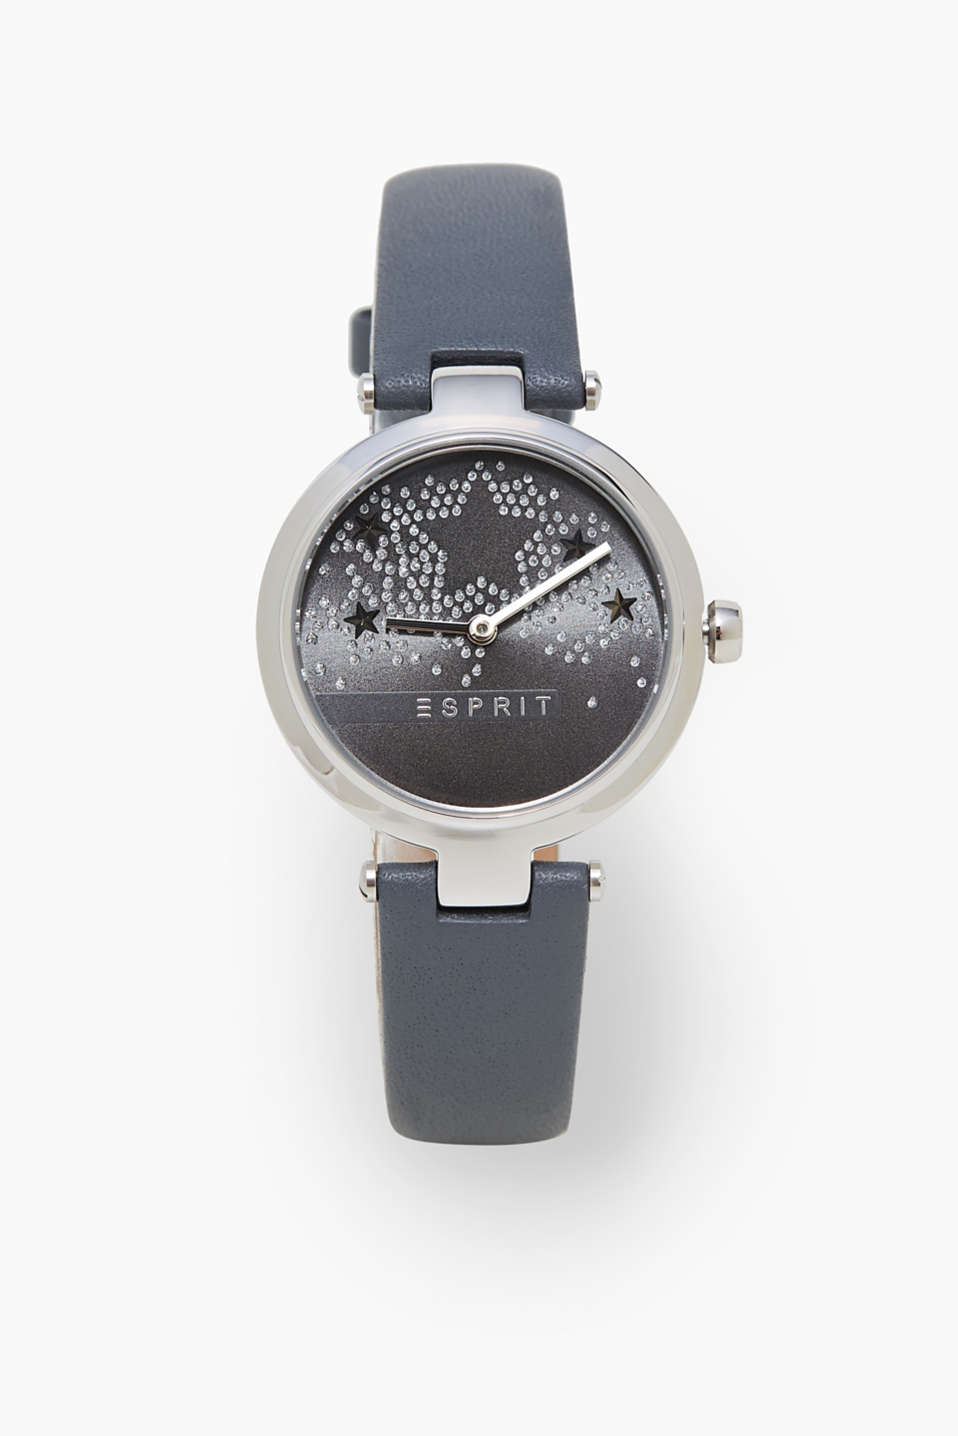 Esprit - Stainless steel watch with embellished dial